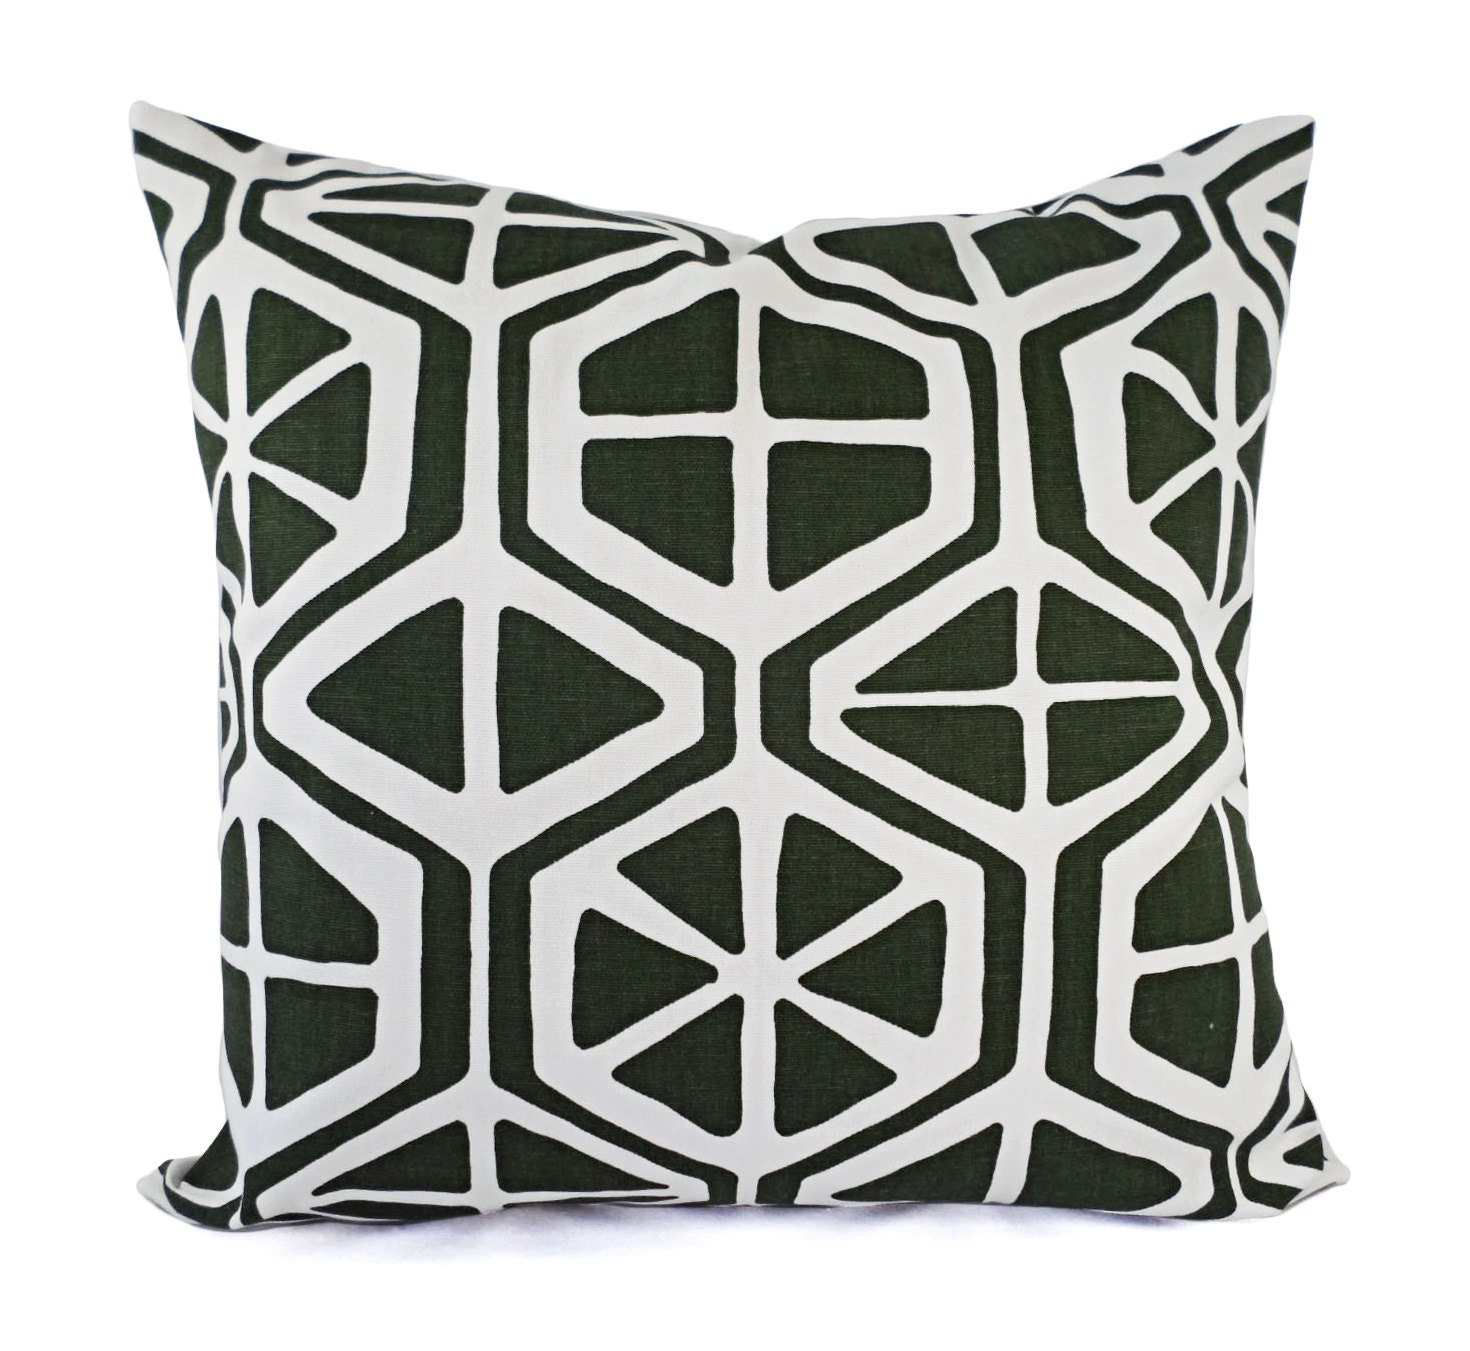 CLEARANCE One Green Decorative Pillow Cover Forest Green and